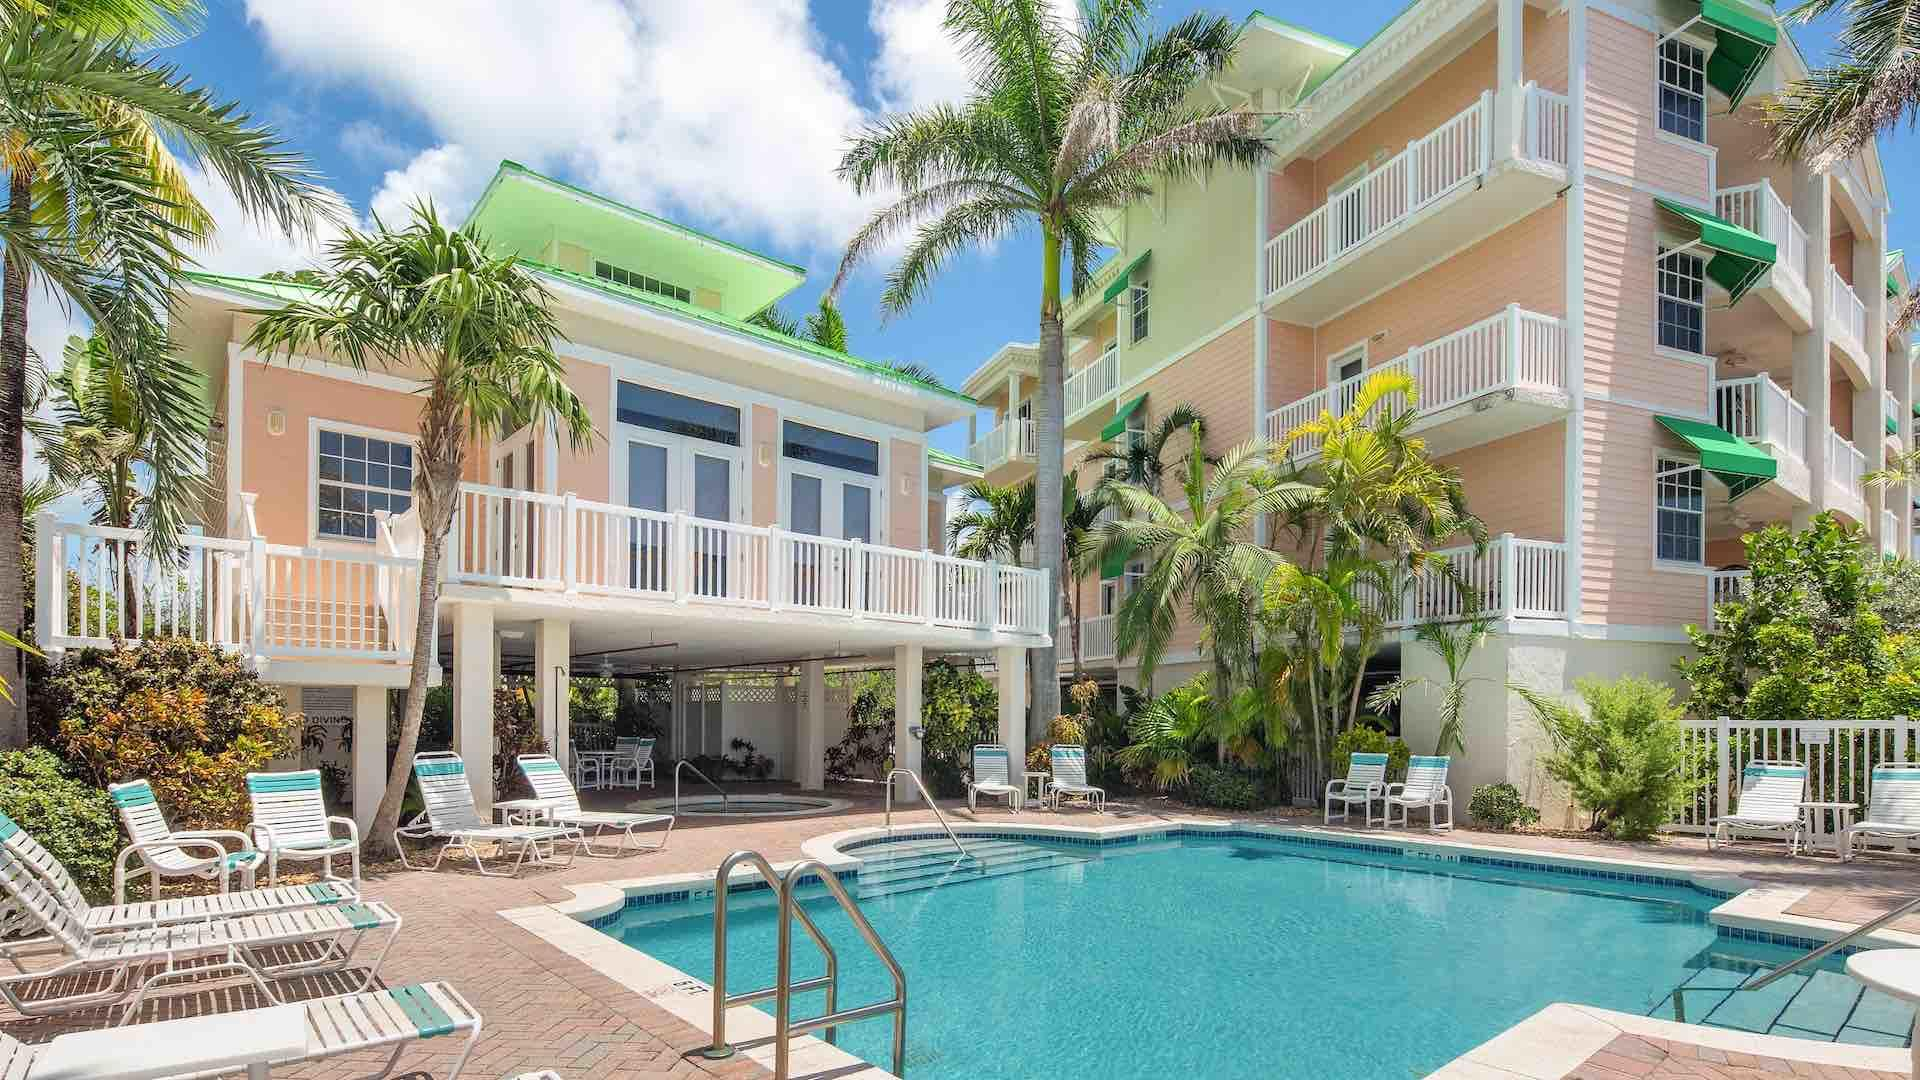 The Community Pool is located just steps from the condo...